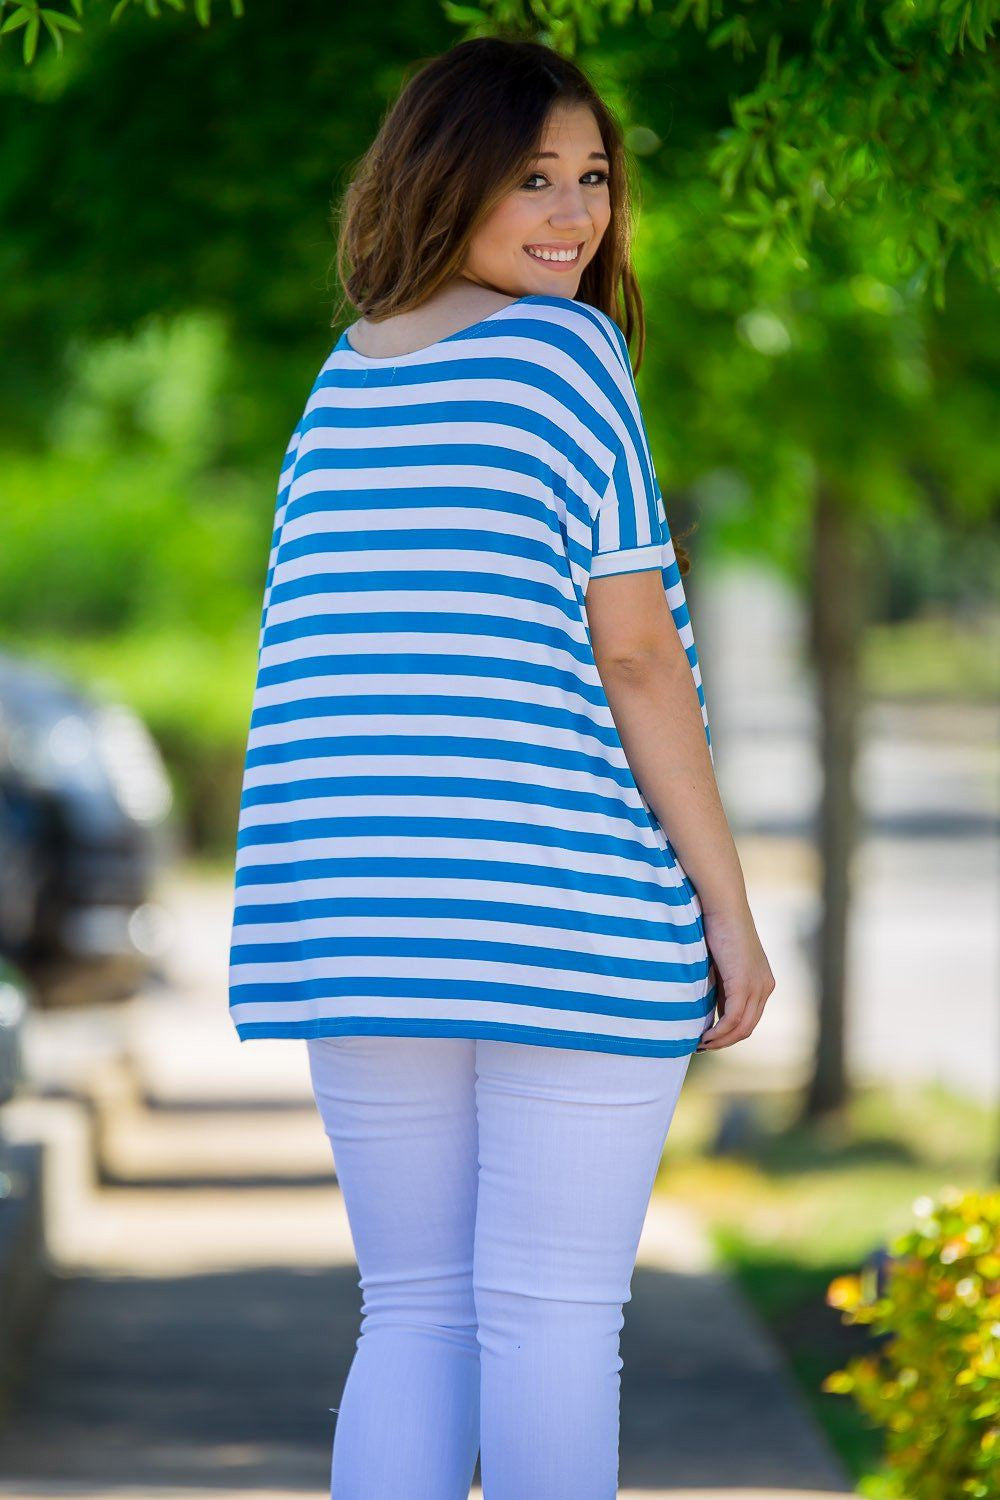 Short Sleeve Thick Stripe Piko Top - Blue/White - Piko Clothing - 2